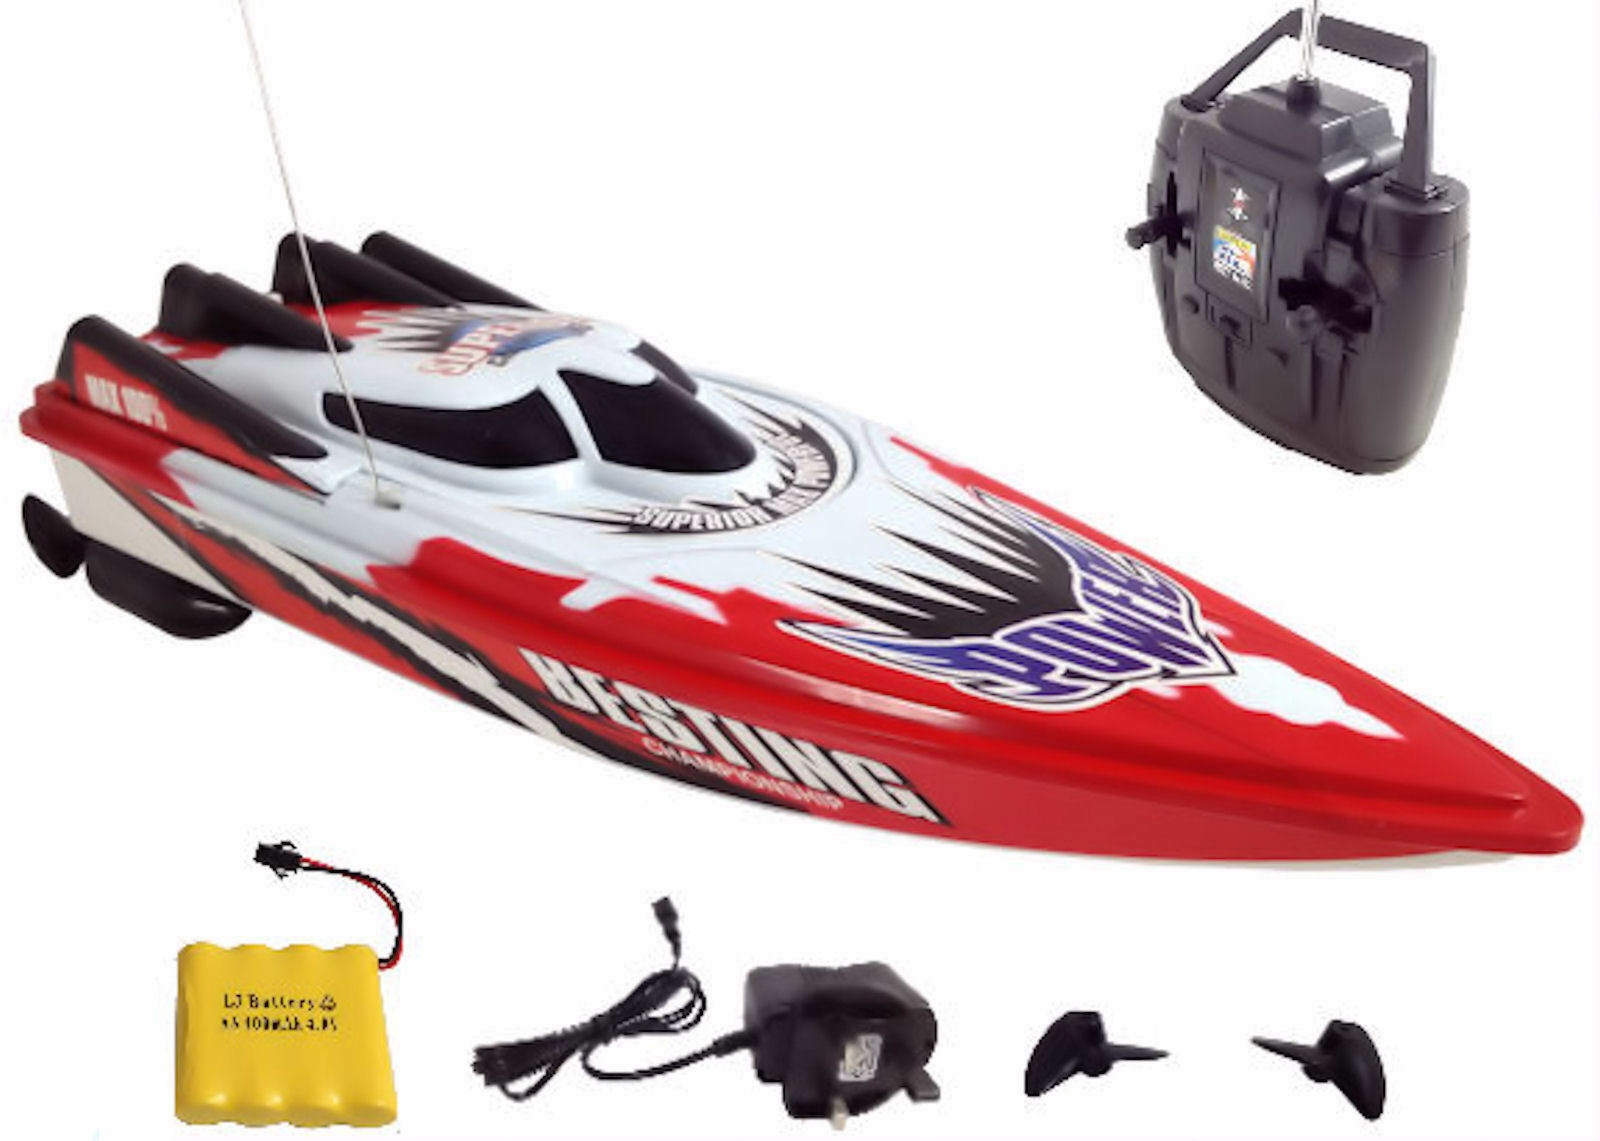 hovercraft remote control with Rc Radio Remote Control Racing Speed Boat Twin 121138682890 on 12245 as well Remote Control Boats Petrol besides 380634 Dubai Police Unveil Flying Autonomous Tech At Gitex 2017 further Pz6ae2c27 Cz5b08703 Pug Soft Animal Holiday Plush Toys Puppy Dog Doll For Birthday Gift moreover Watch.